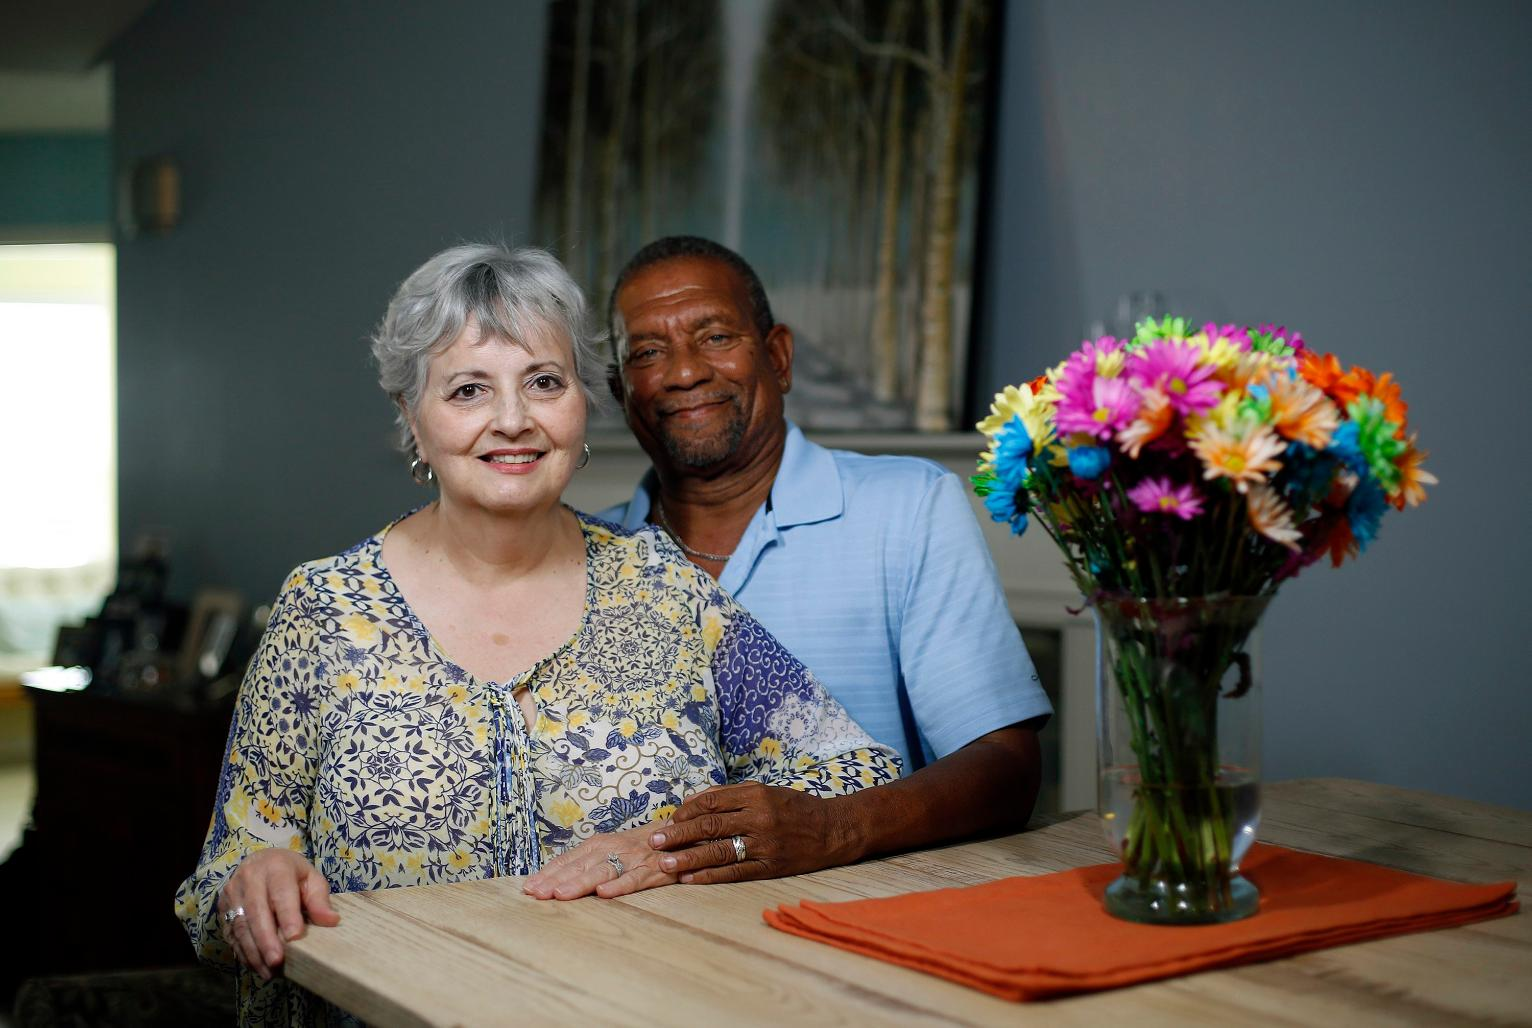 Interracial Couple Split by Racist Law Reunites Years